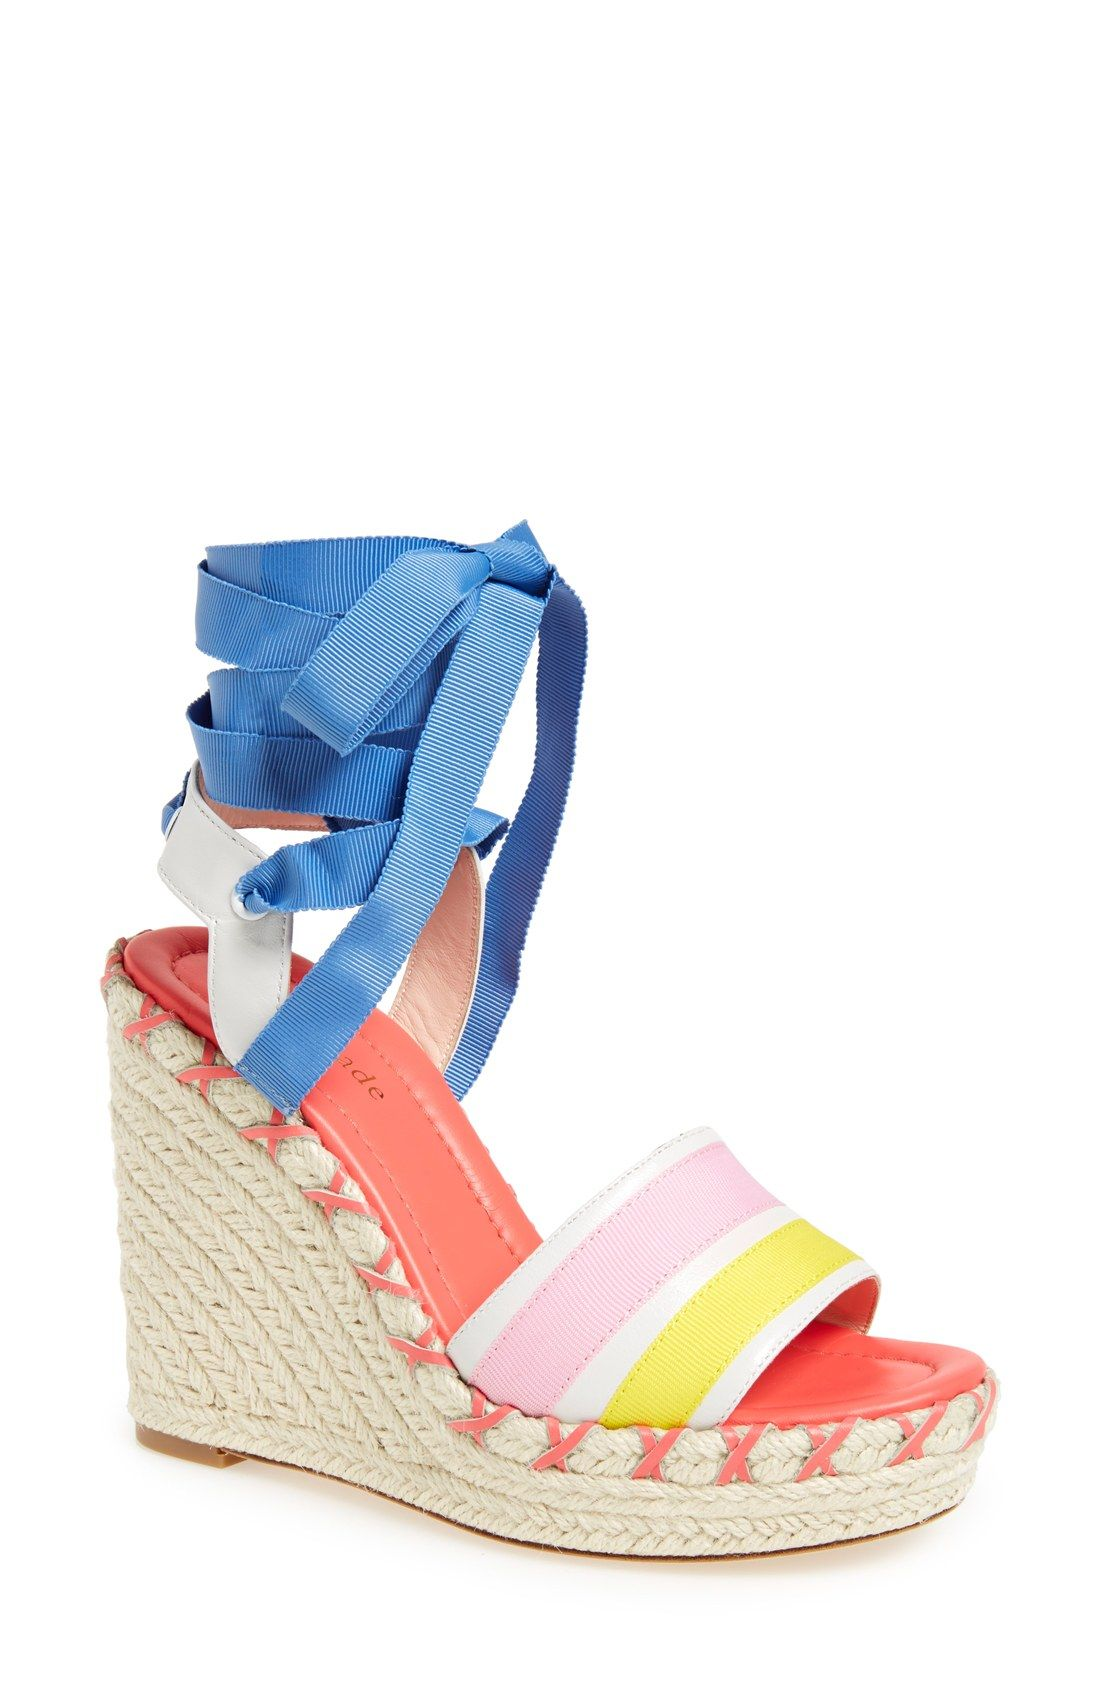 bf1b269d939 These colorful wedge sandals kate spade are perfect for spring jpg  1100x1687 Sandals colorful wedge shoes